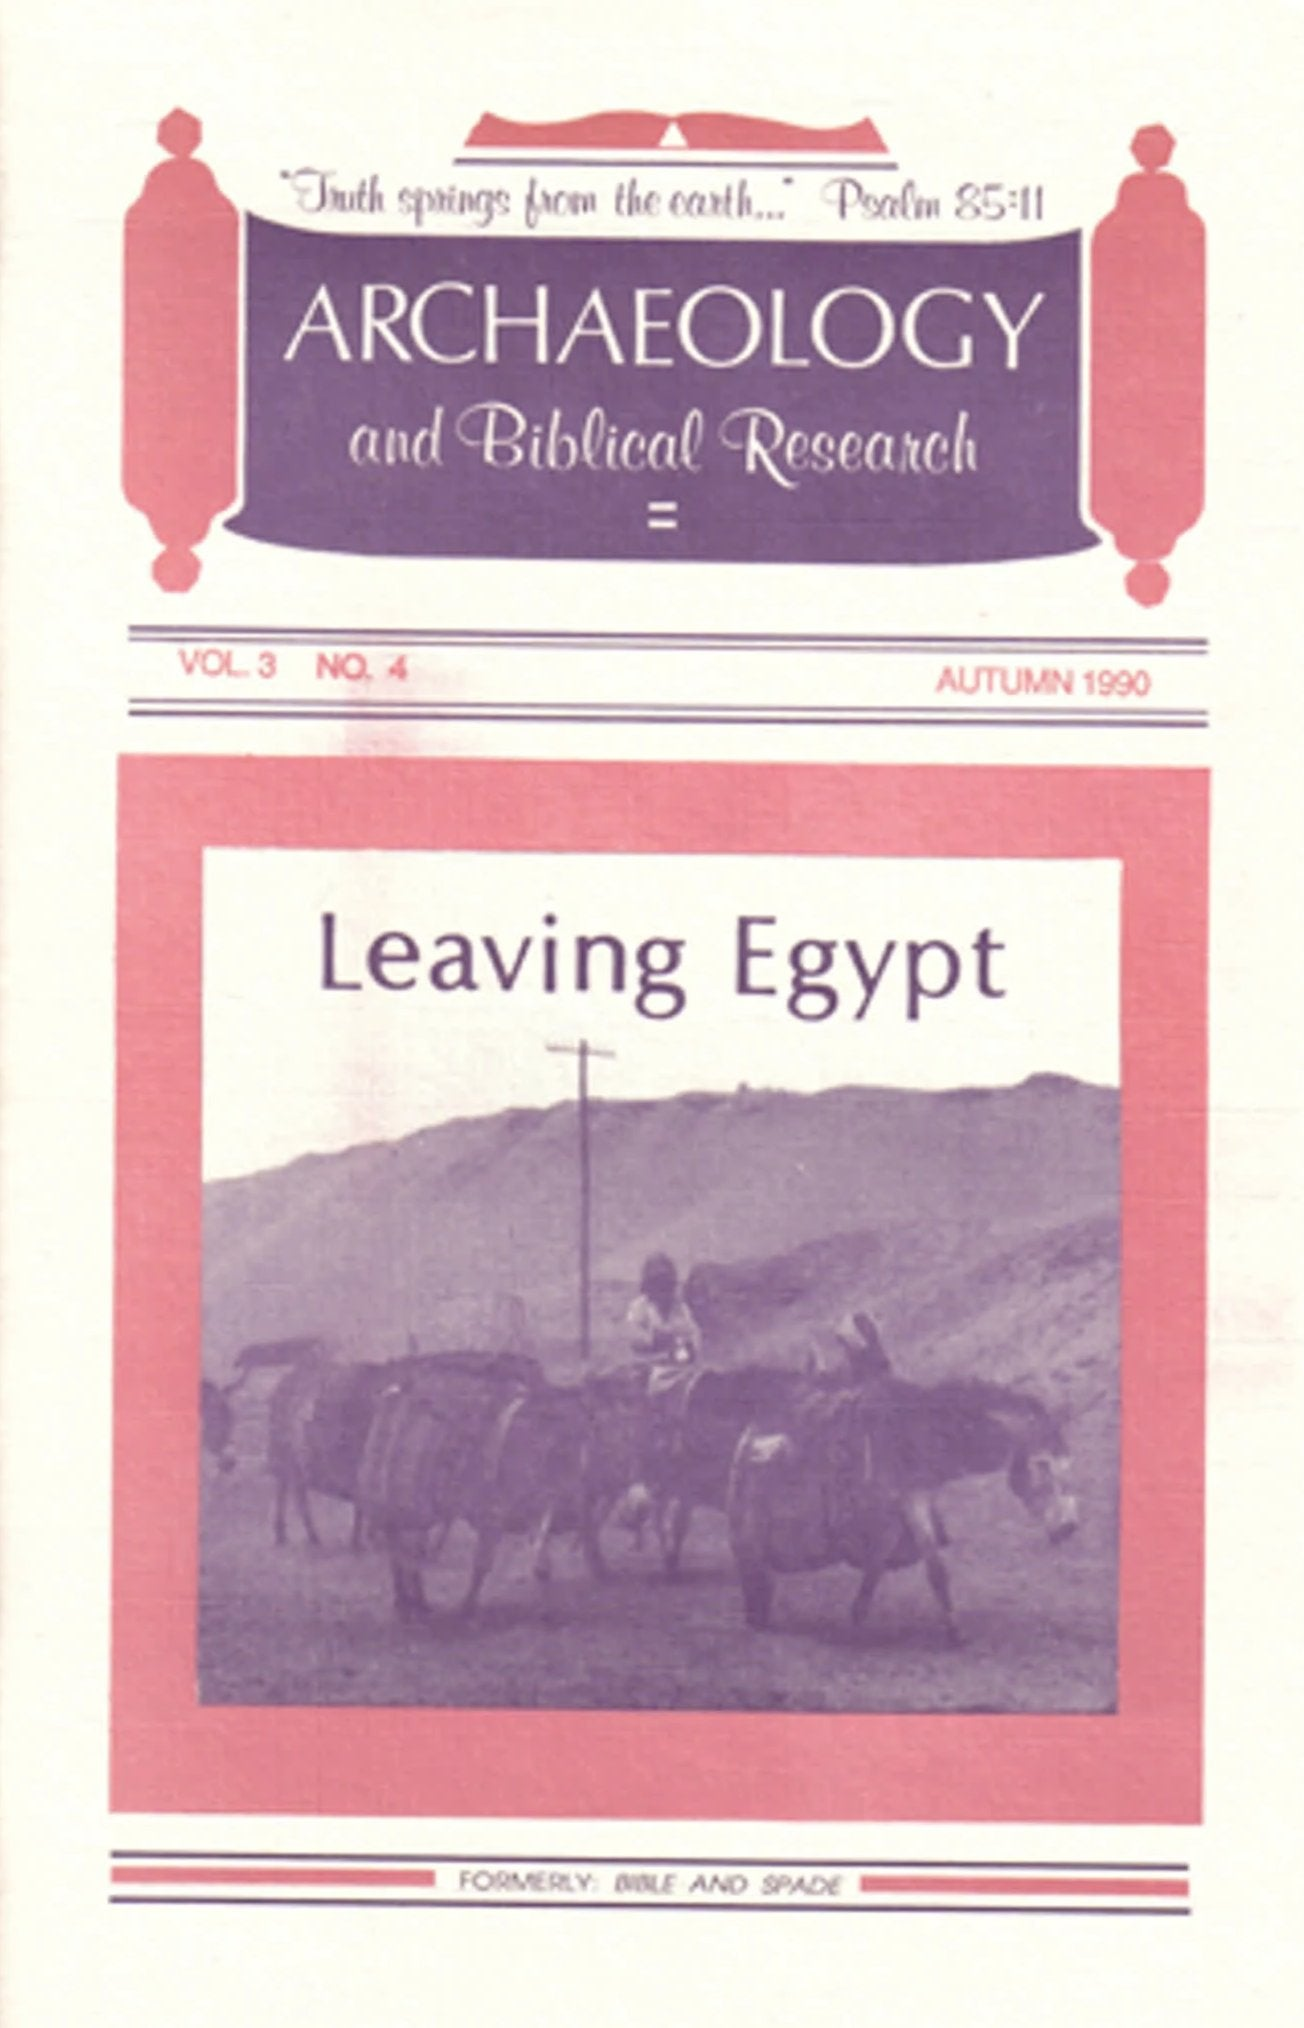 Four issues of BIBLE and SPADE produced in 1990